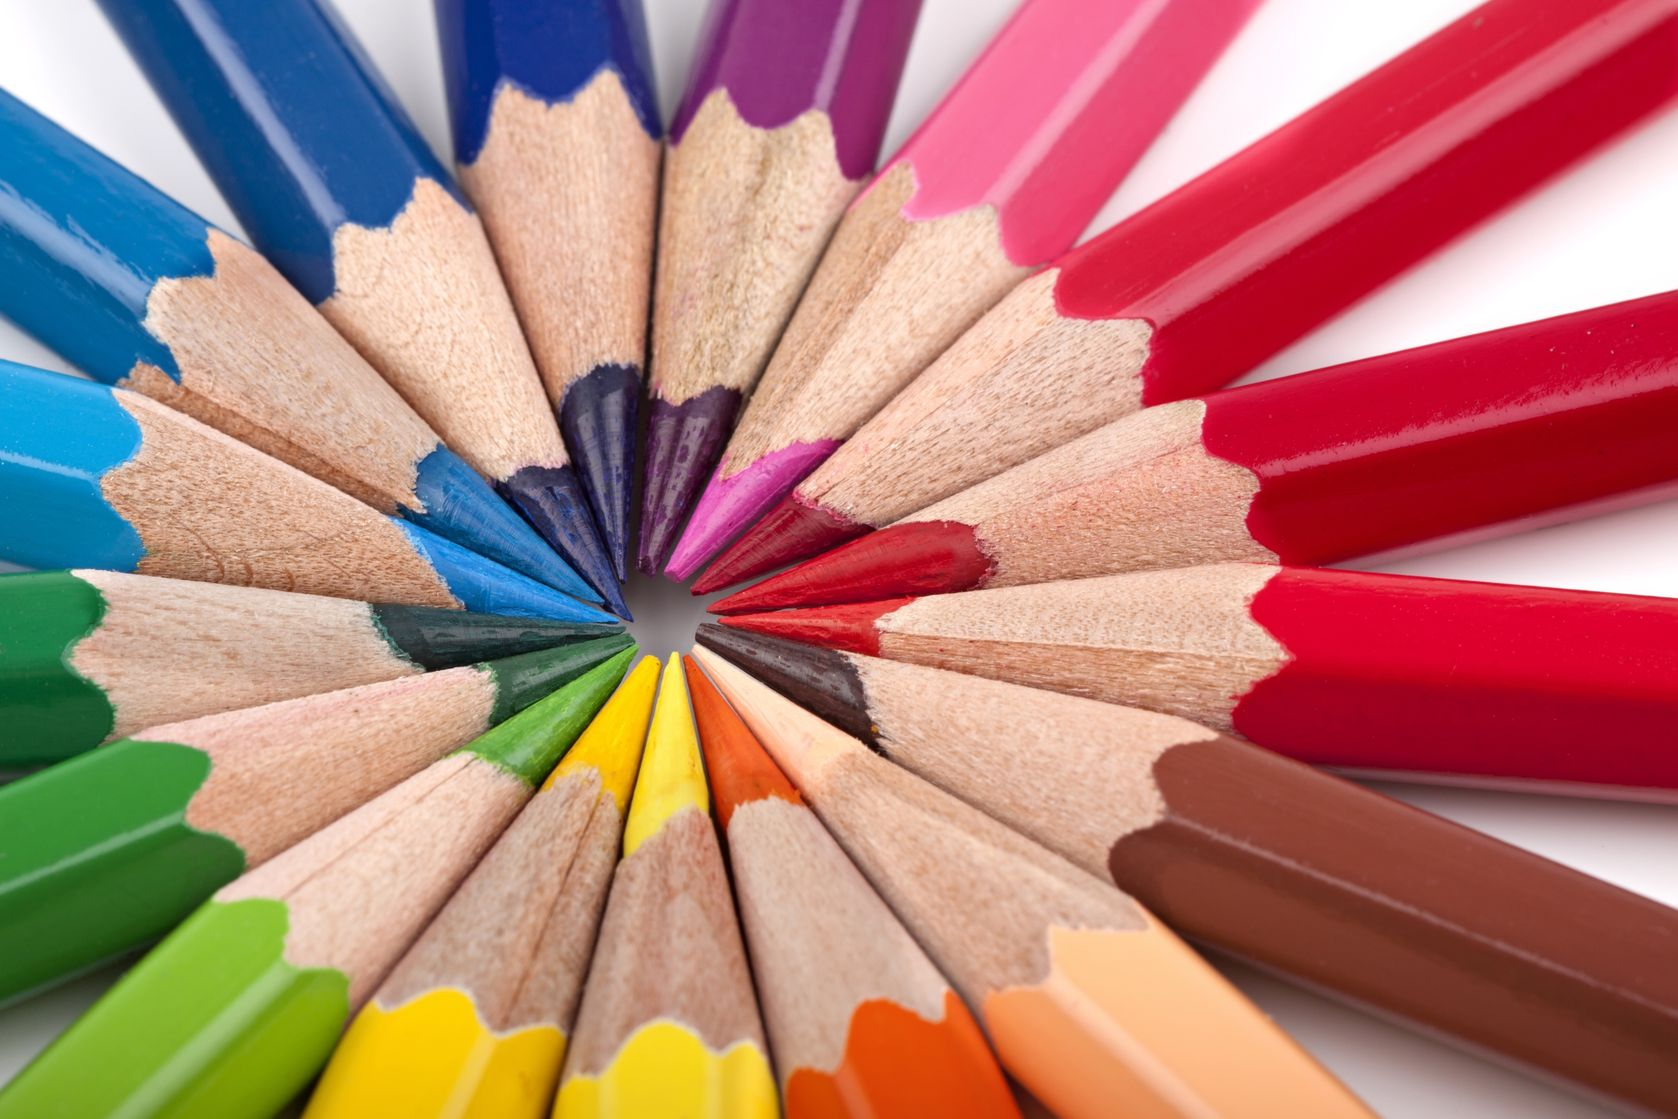 Colourful-art-pencils-for-Hartleys-drawing-board